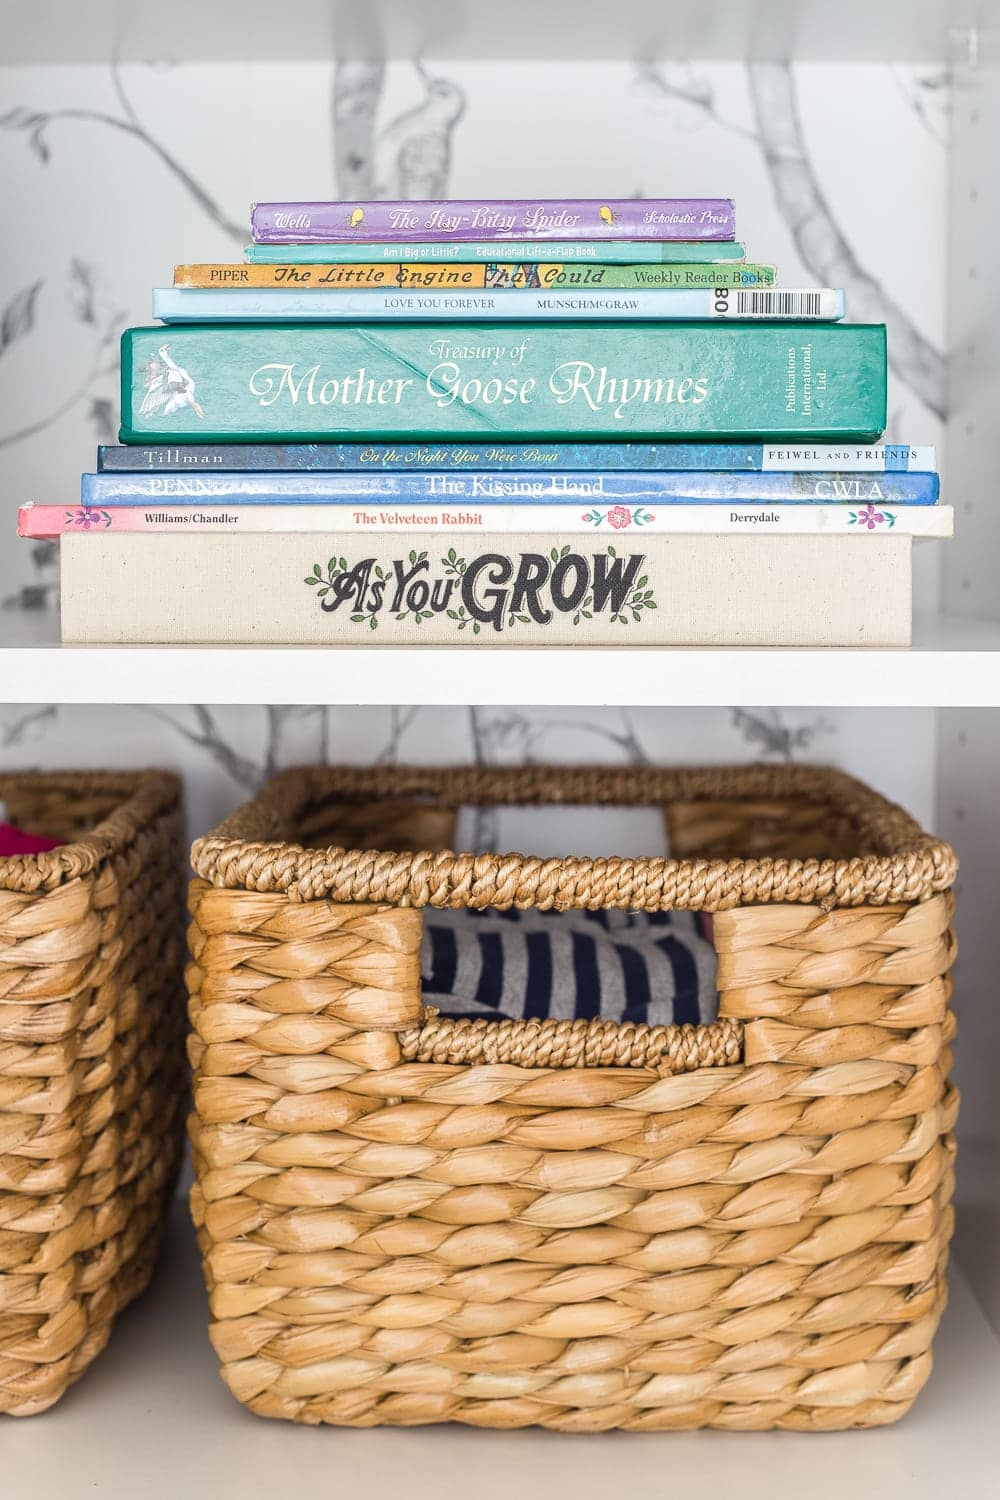 Nursery closet organization with shelving for books